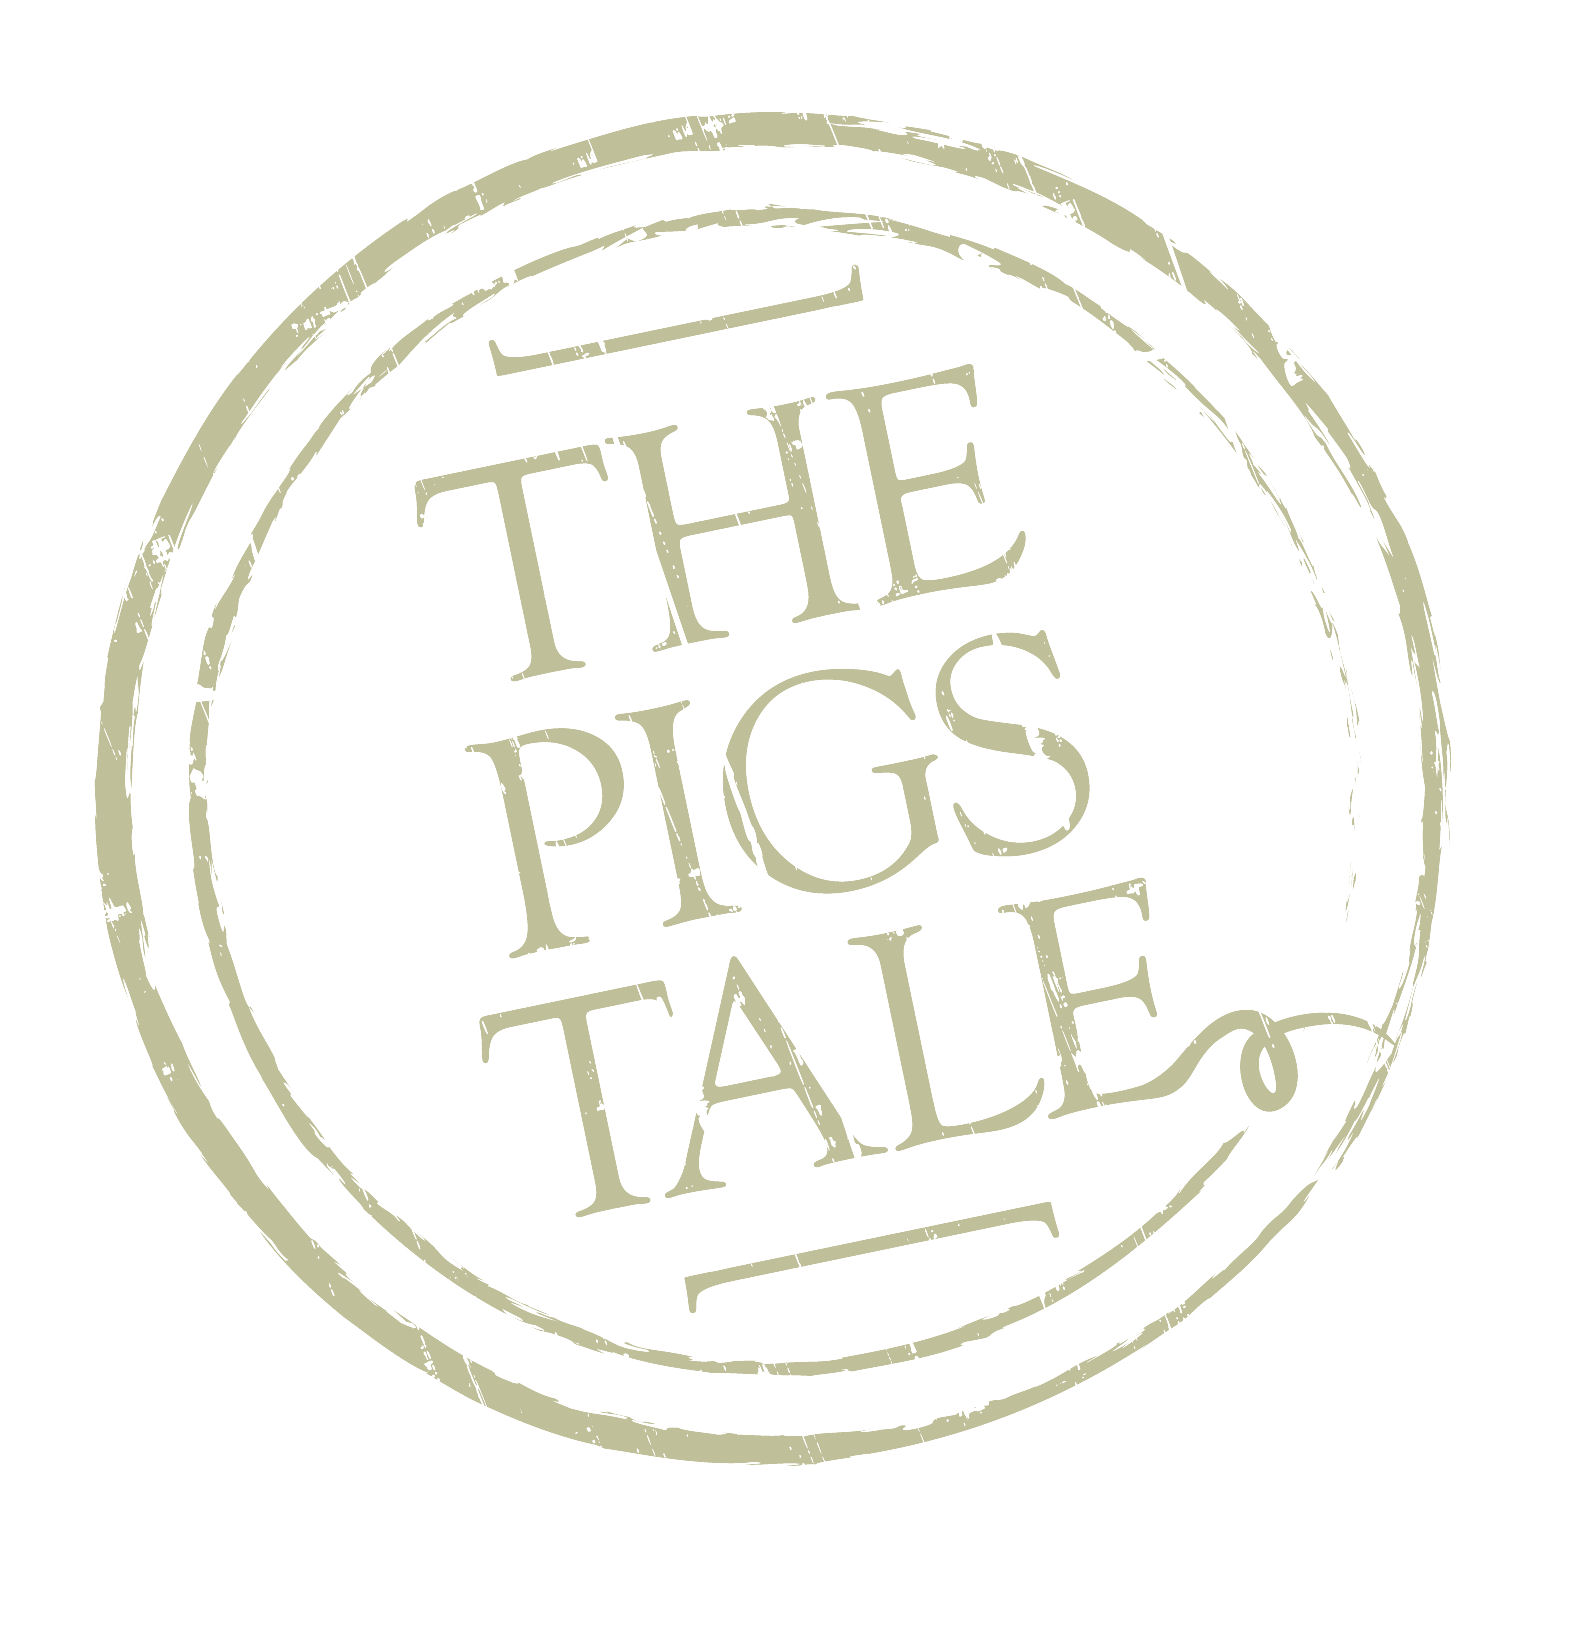 The Pigs Tale